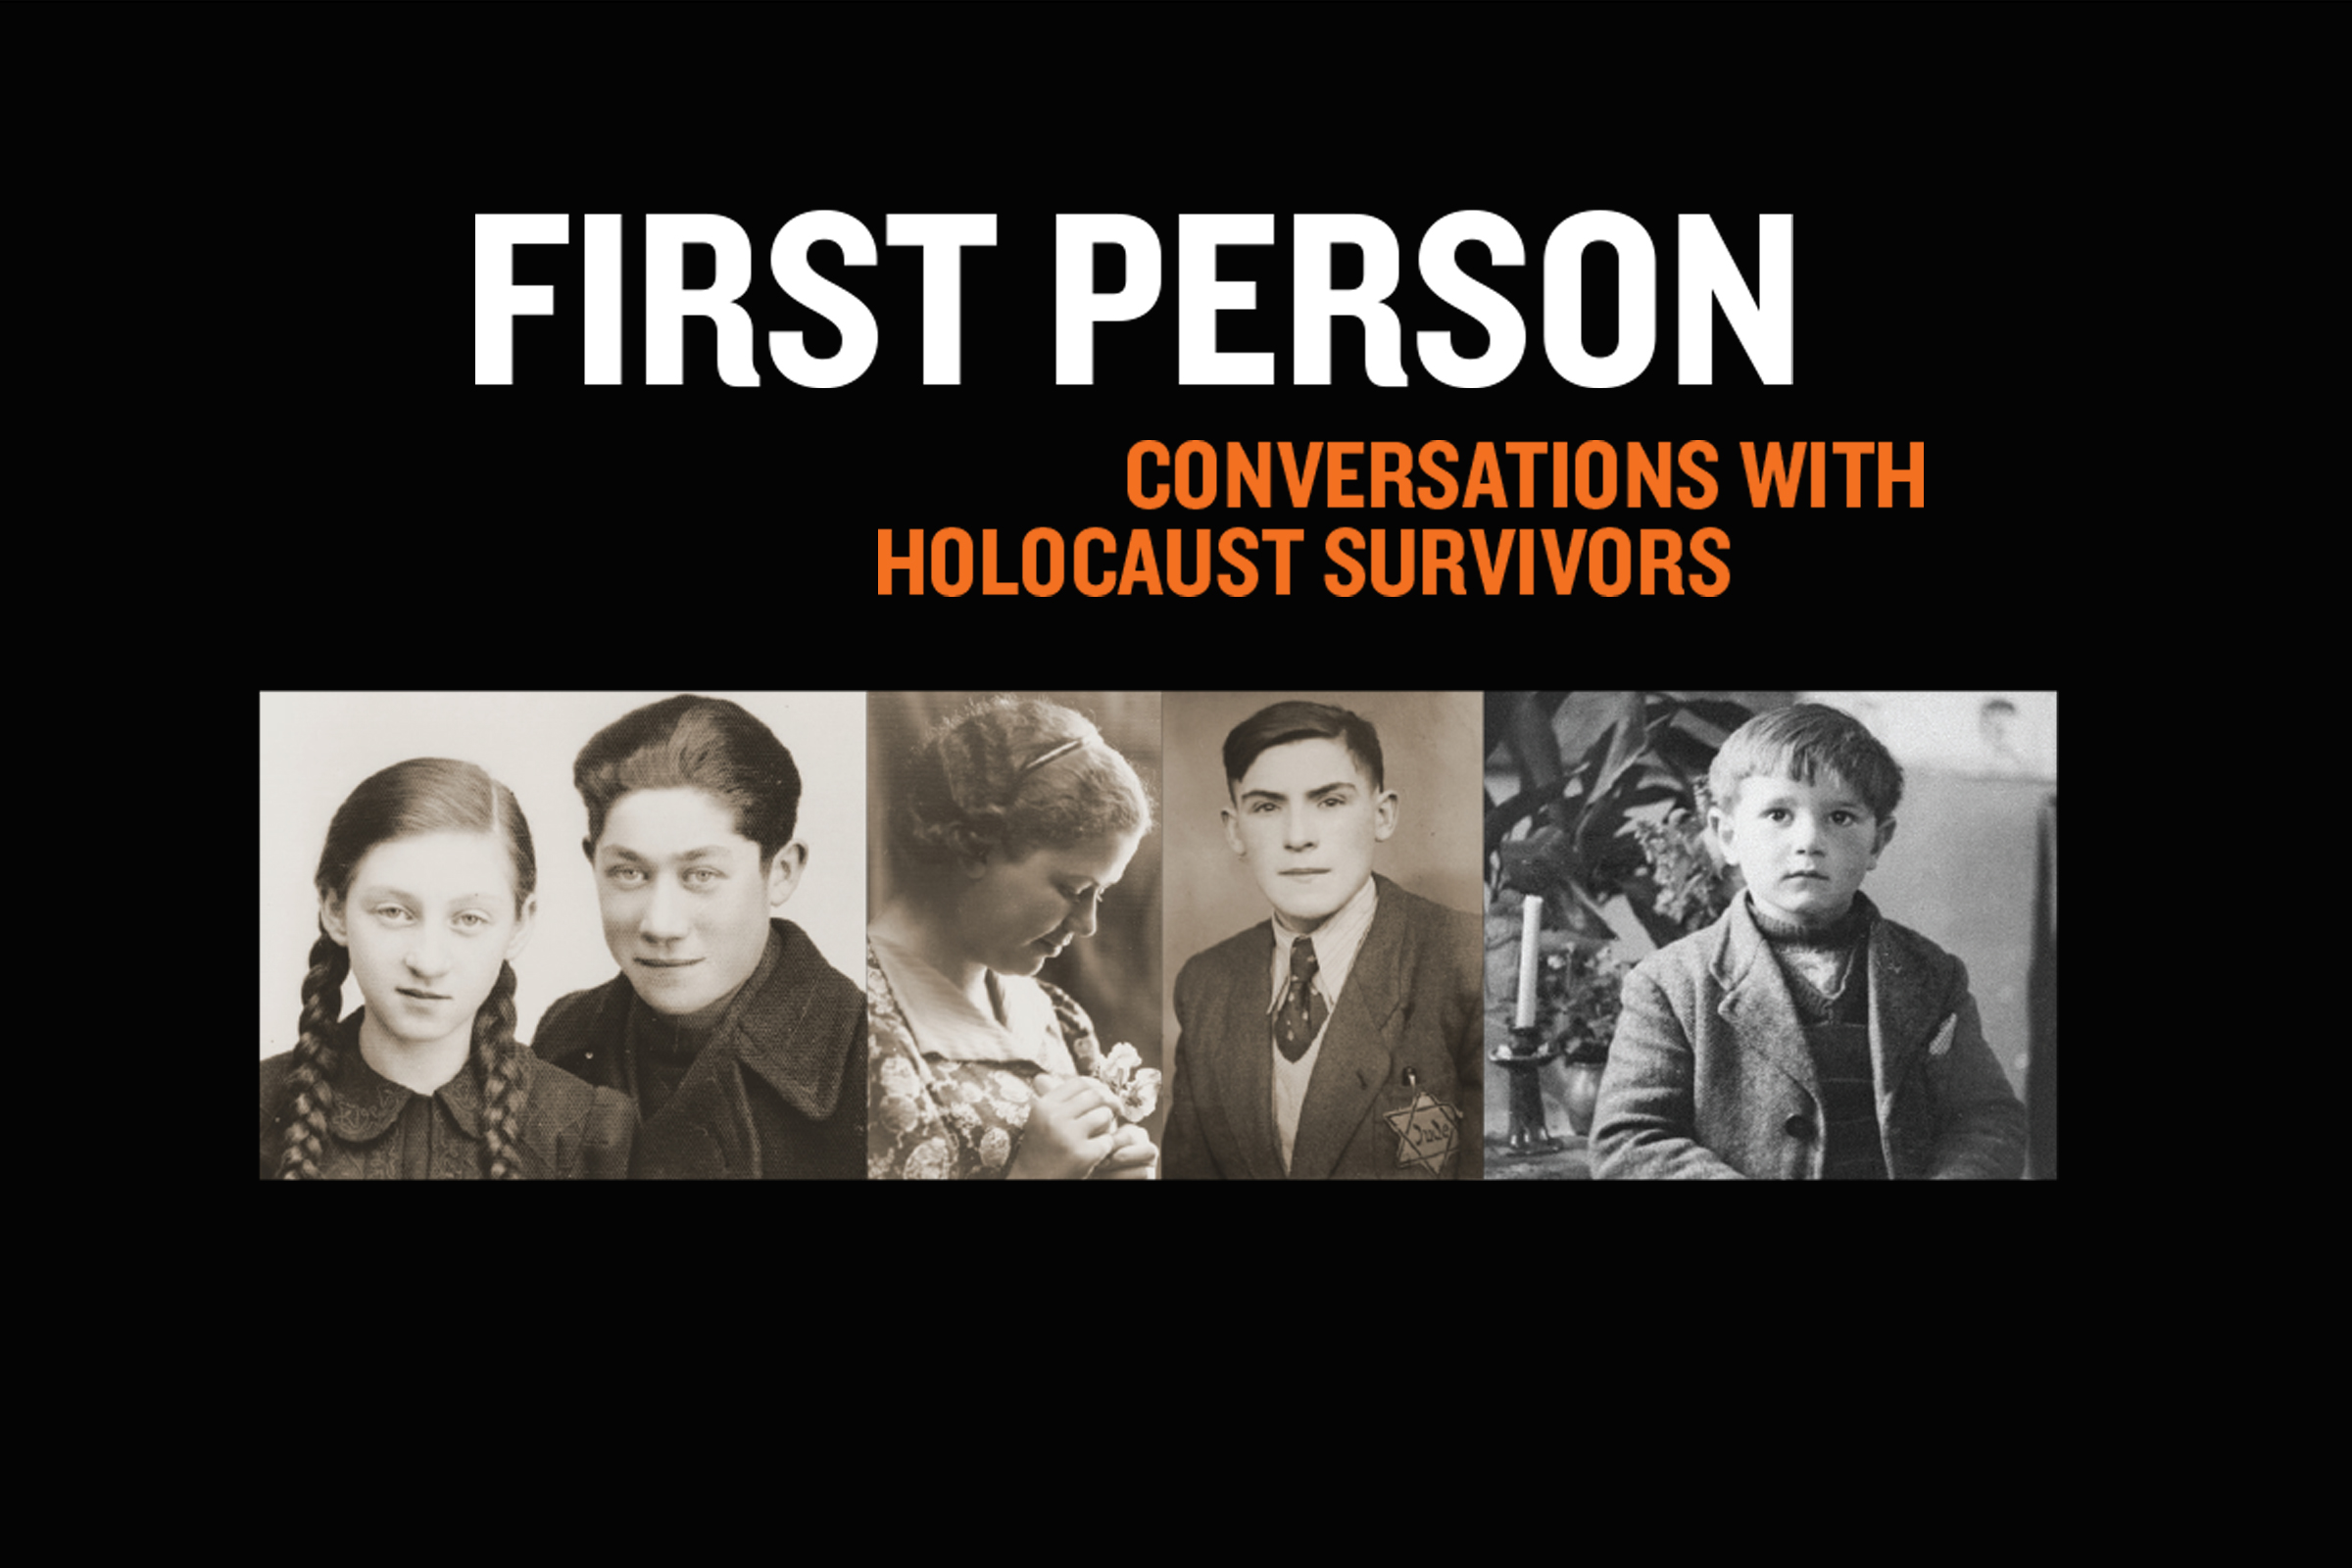 First Person: Conversations with Holocaust Survivors